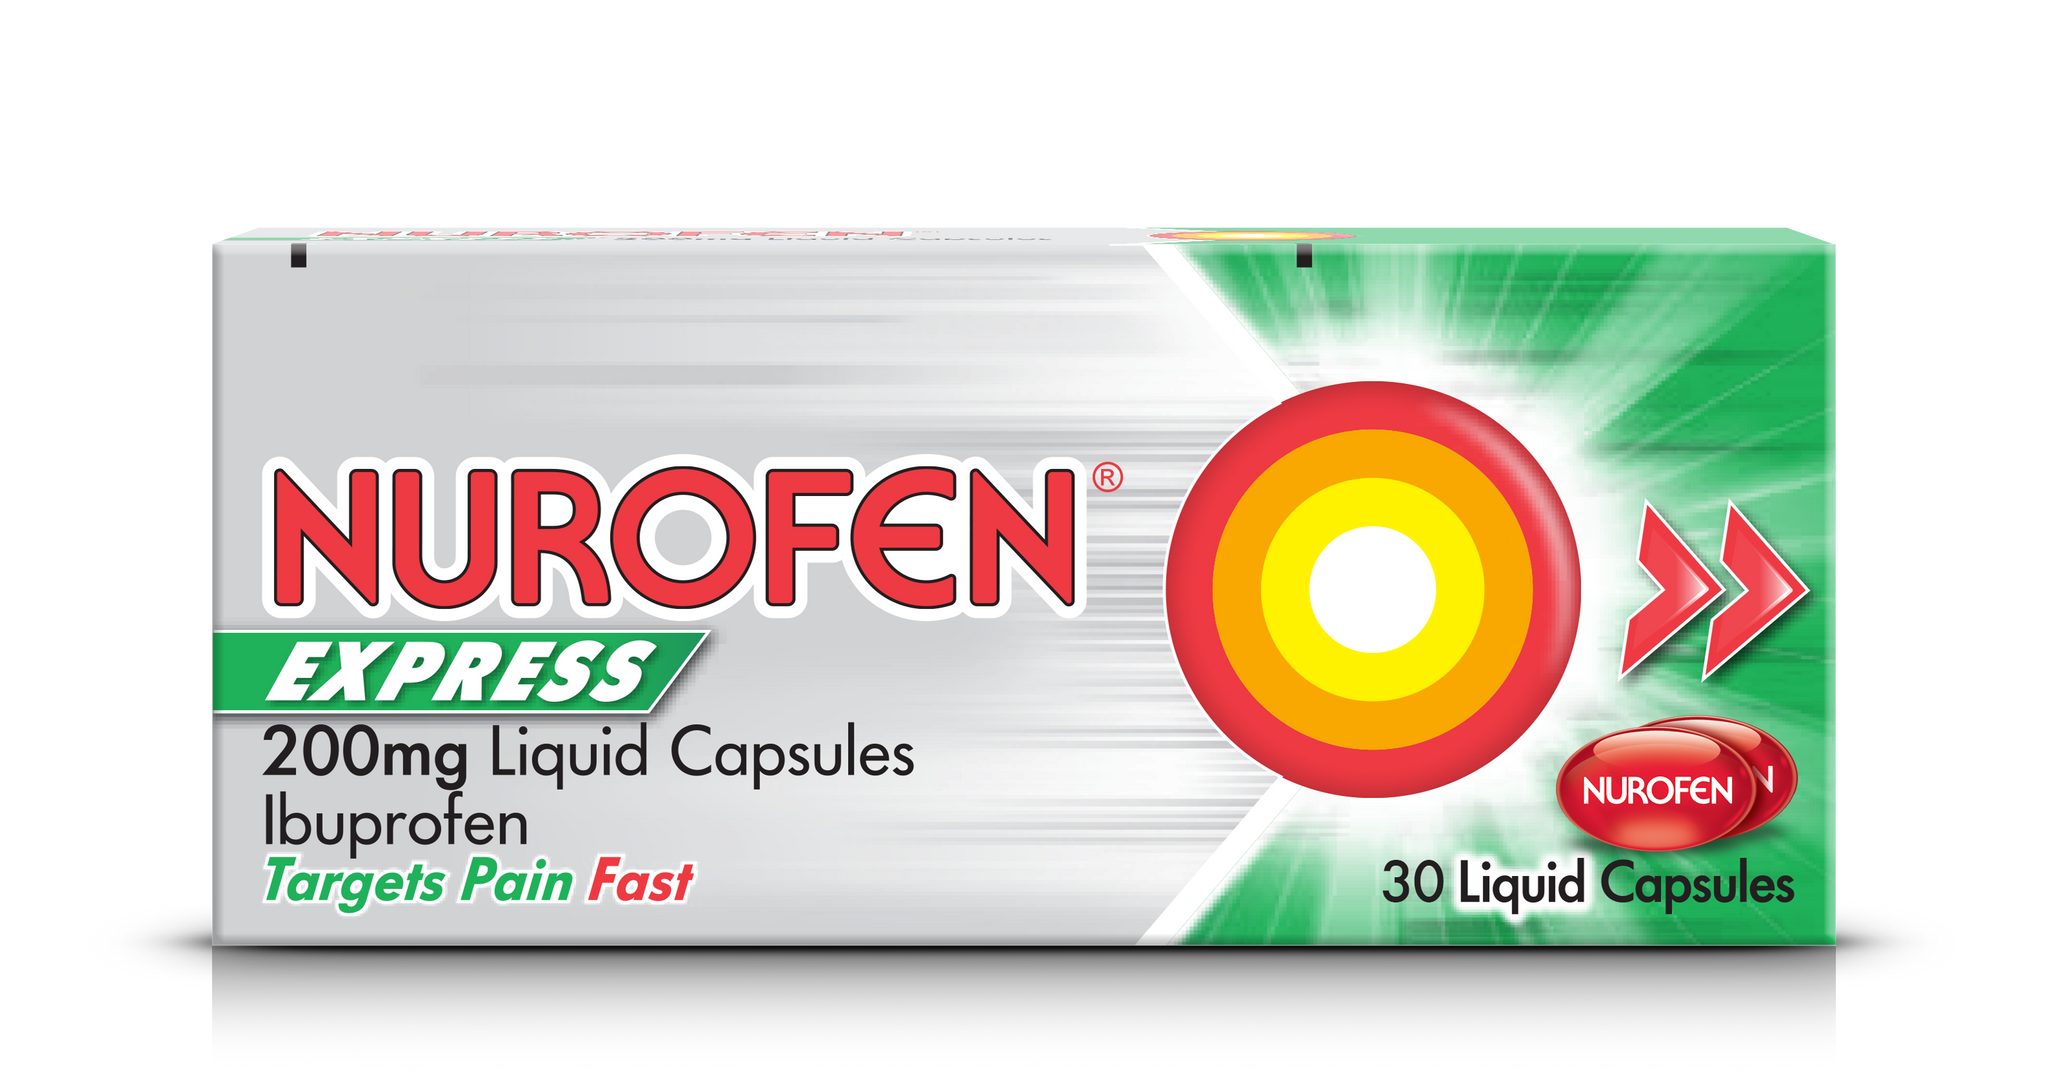 A pack of Nurofen Express 200mg Liquid Capsules